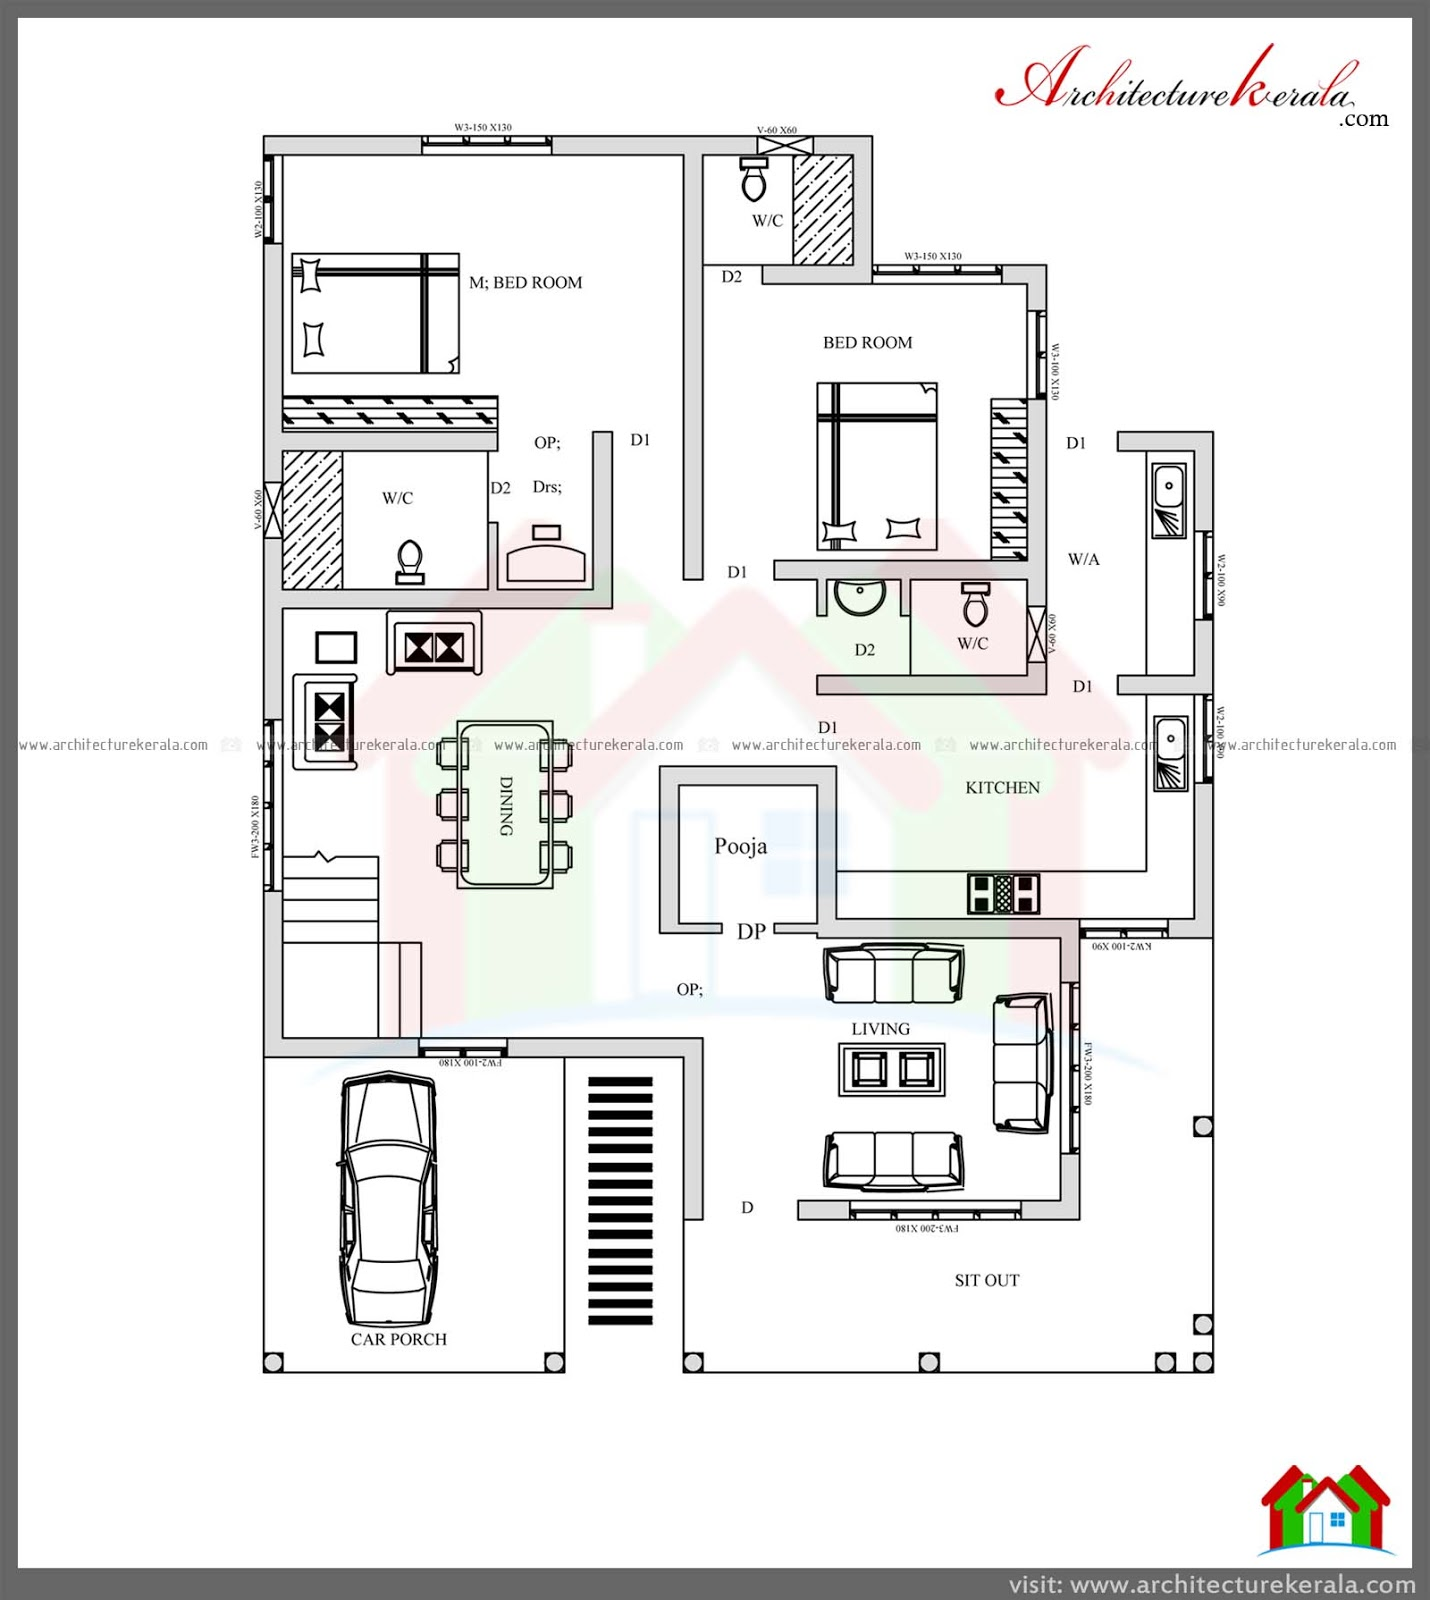 Stunning 4 bedroom kerala home design with pooja room free for Kerala house plans with photos free